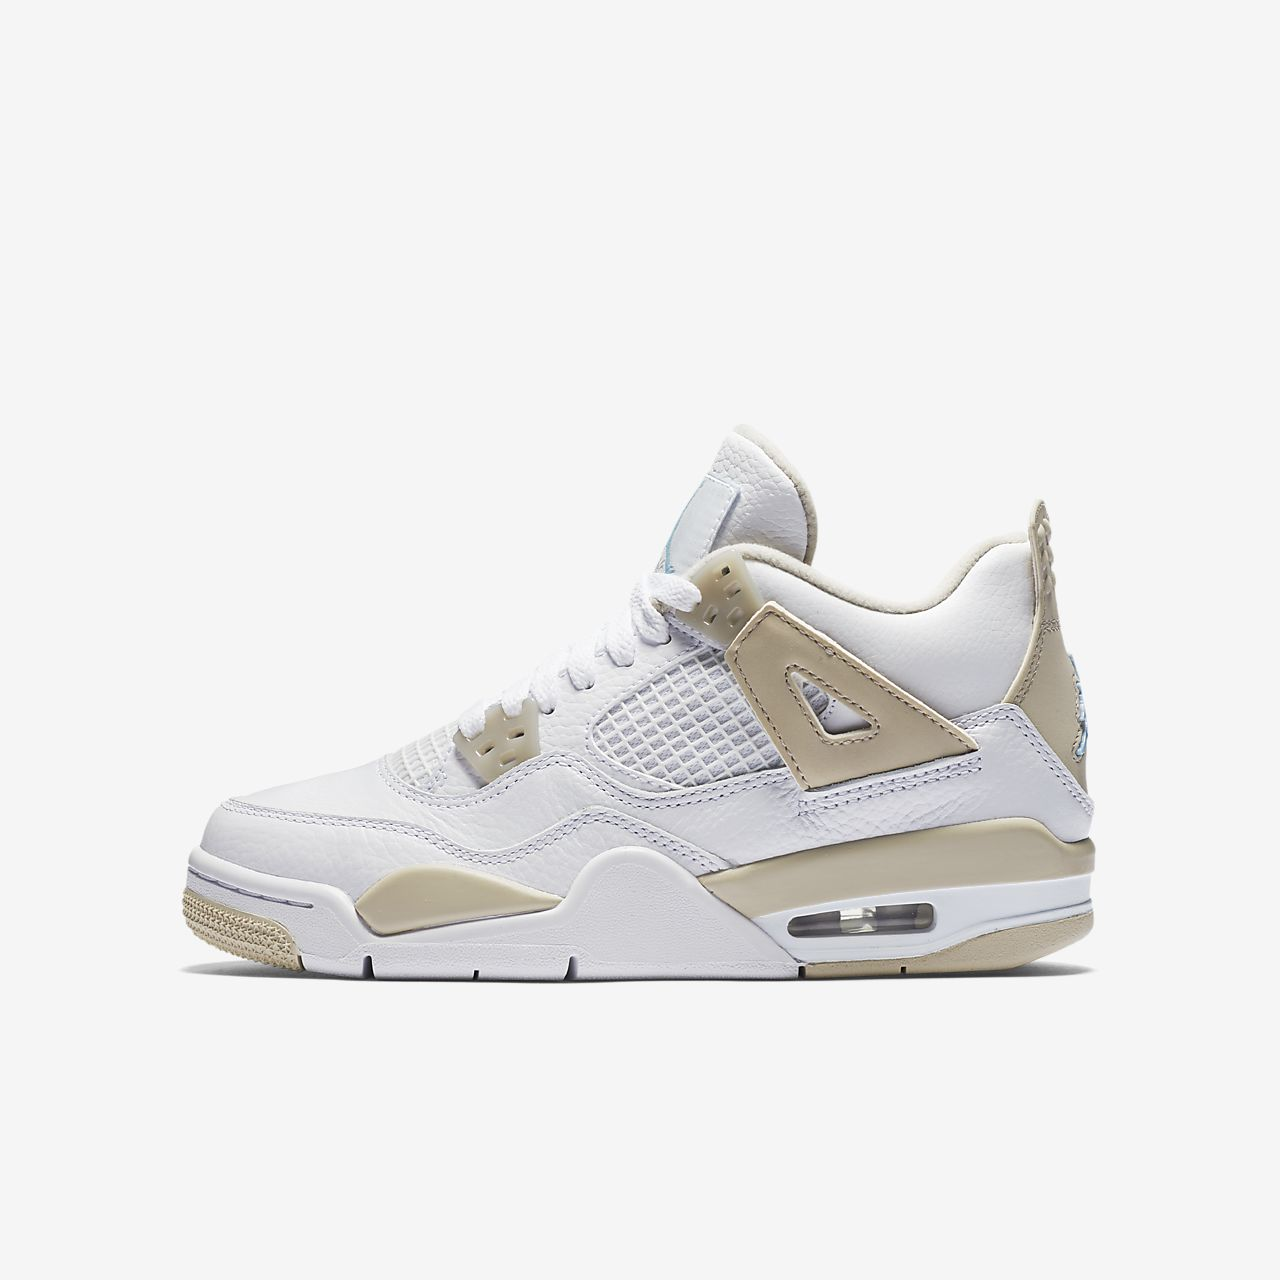 ... Air Jordan 4 Retro (3.5y-9.5y) Girls' Shoe